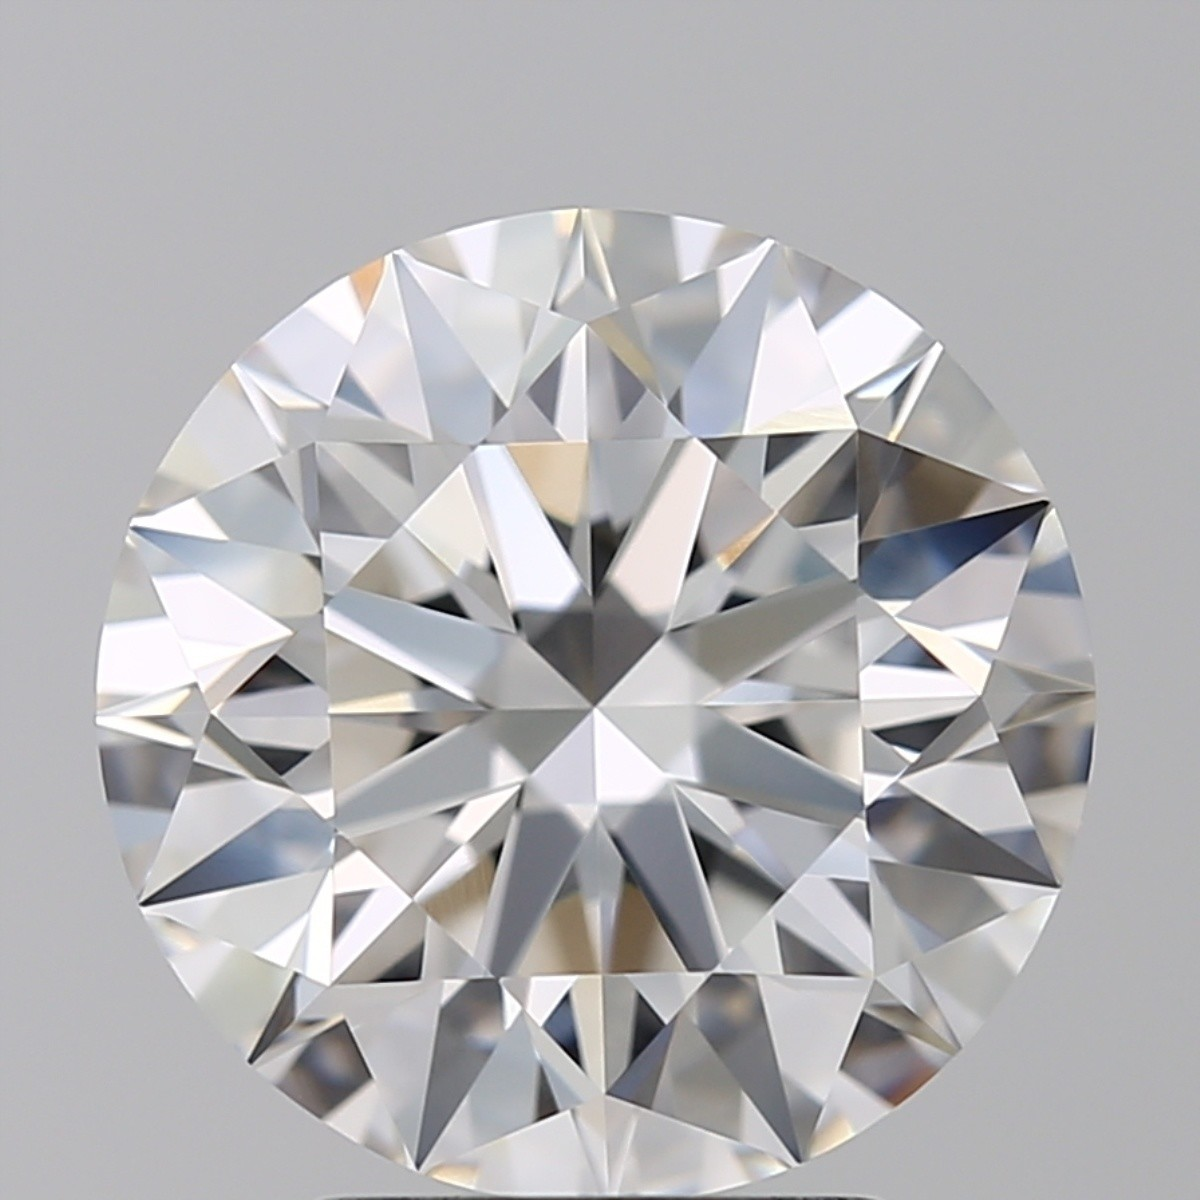 3.15 Carat Round Brilliant Diamond (F/VVS1)